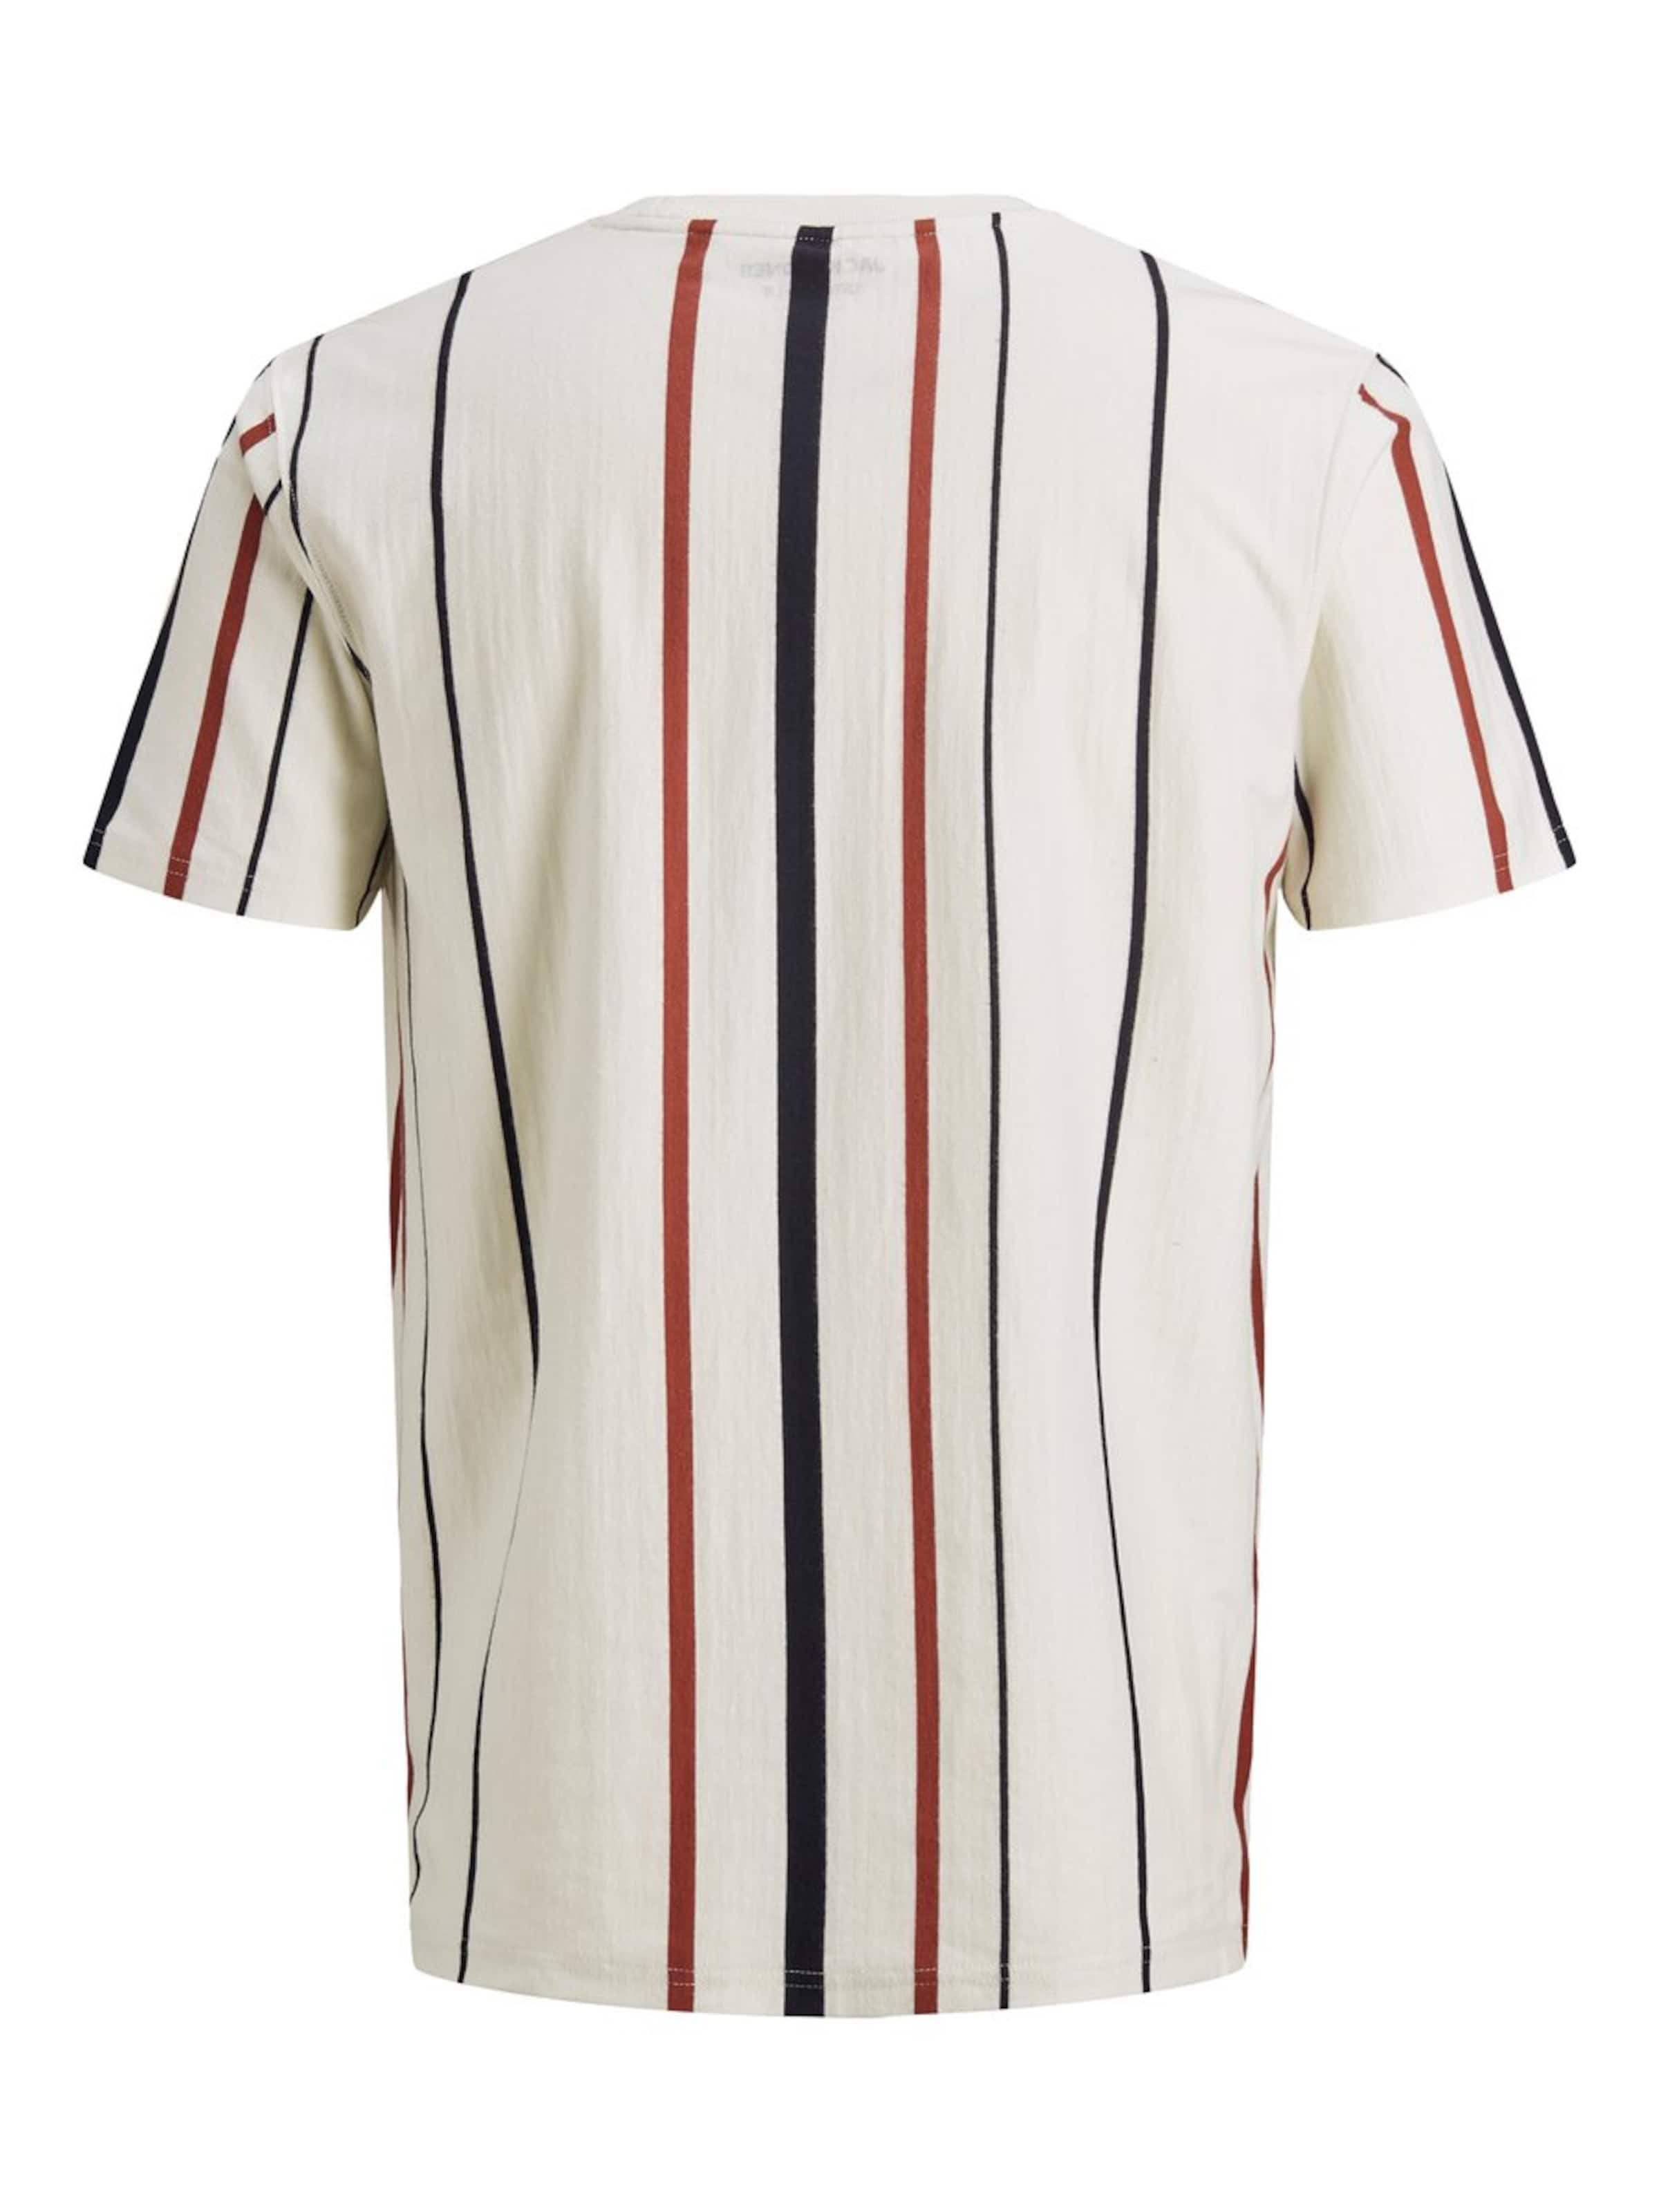 shirt En Jackamp; FoncéRouge Jones Blanc T Bleu Naturel jLSUzVpGqM